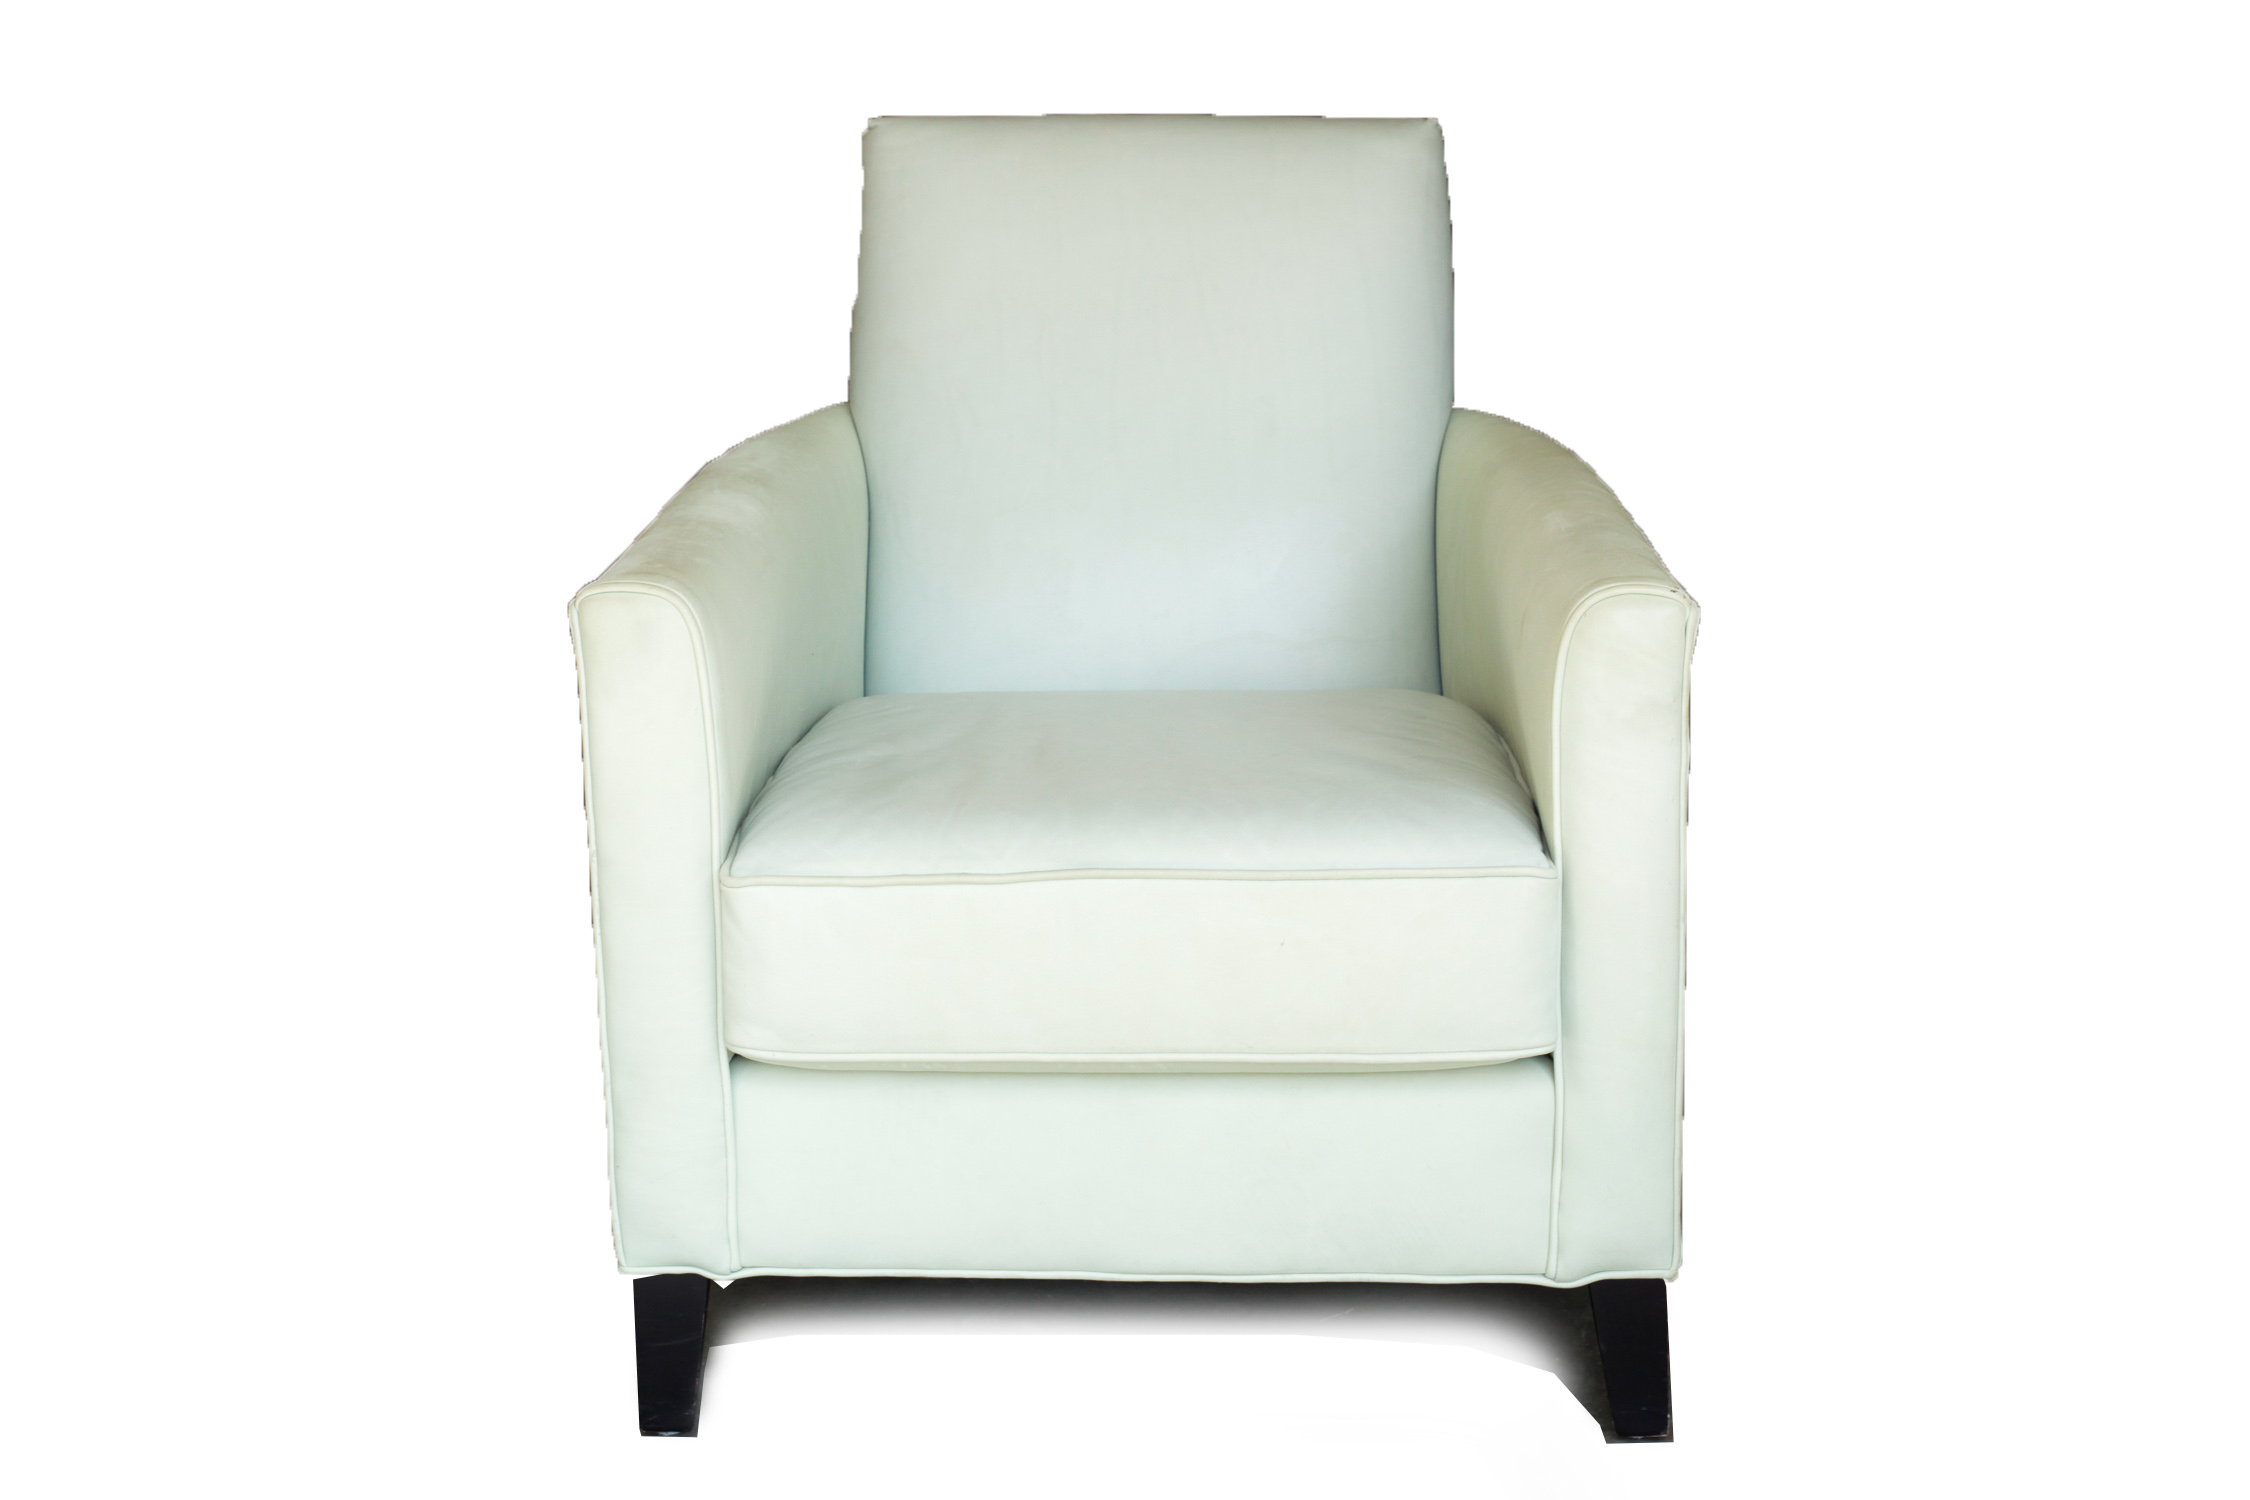 Mitchell Gold + Bob Williams Upholstered Leather Armchair : EBTH